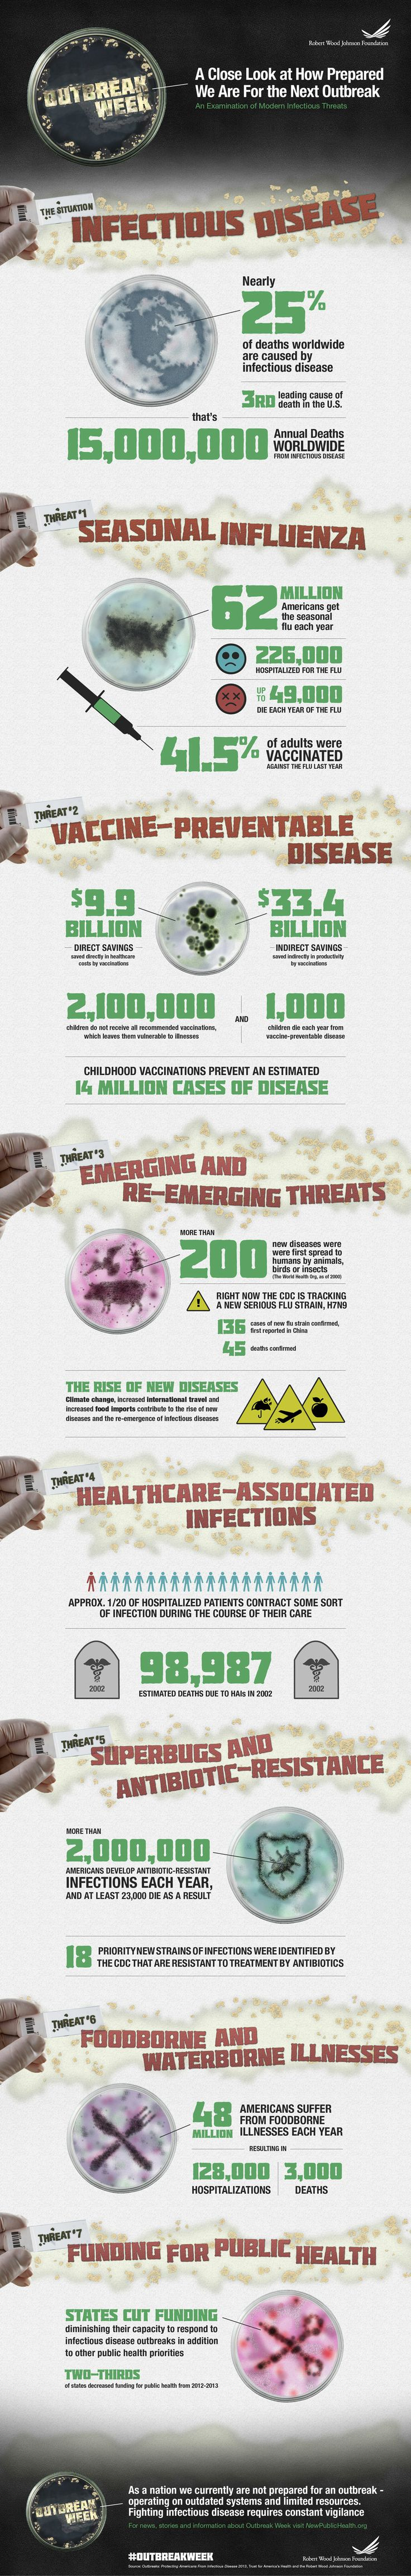 was london prepared for the outbreak Here are the five deadliest outbreaks and pandemics in are we prepared as a nation for the street cholera outbreak in the soho district of london.